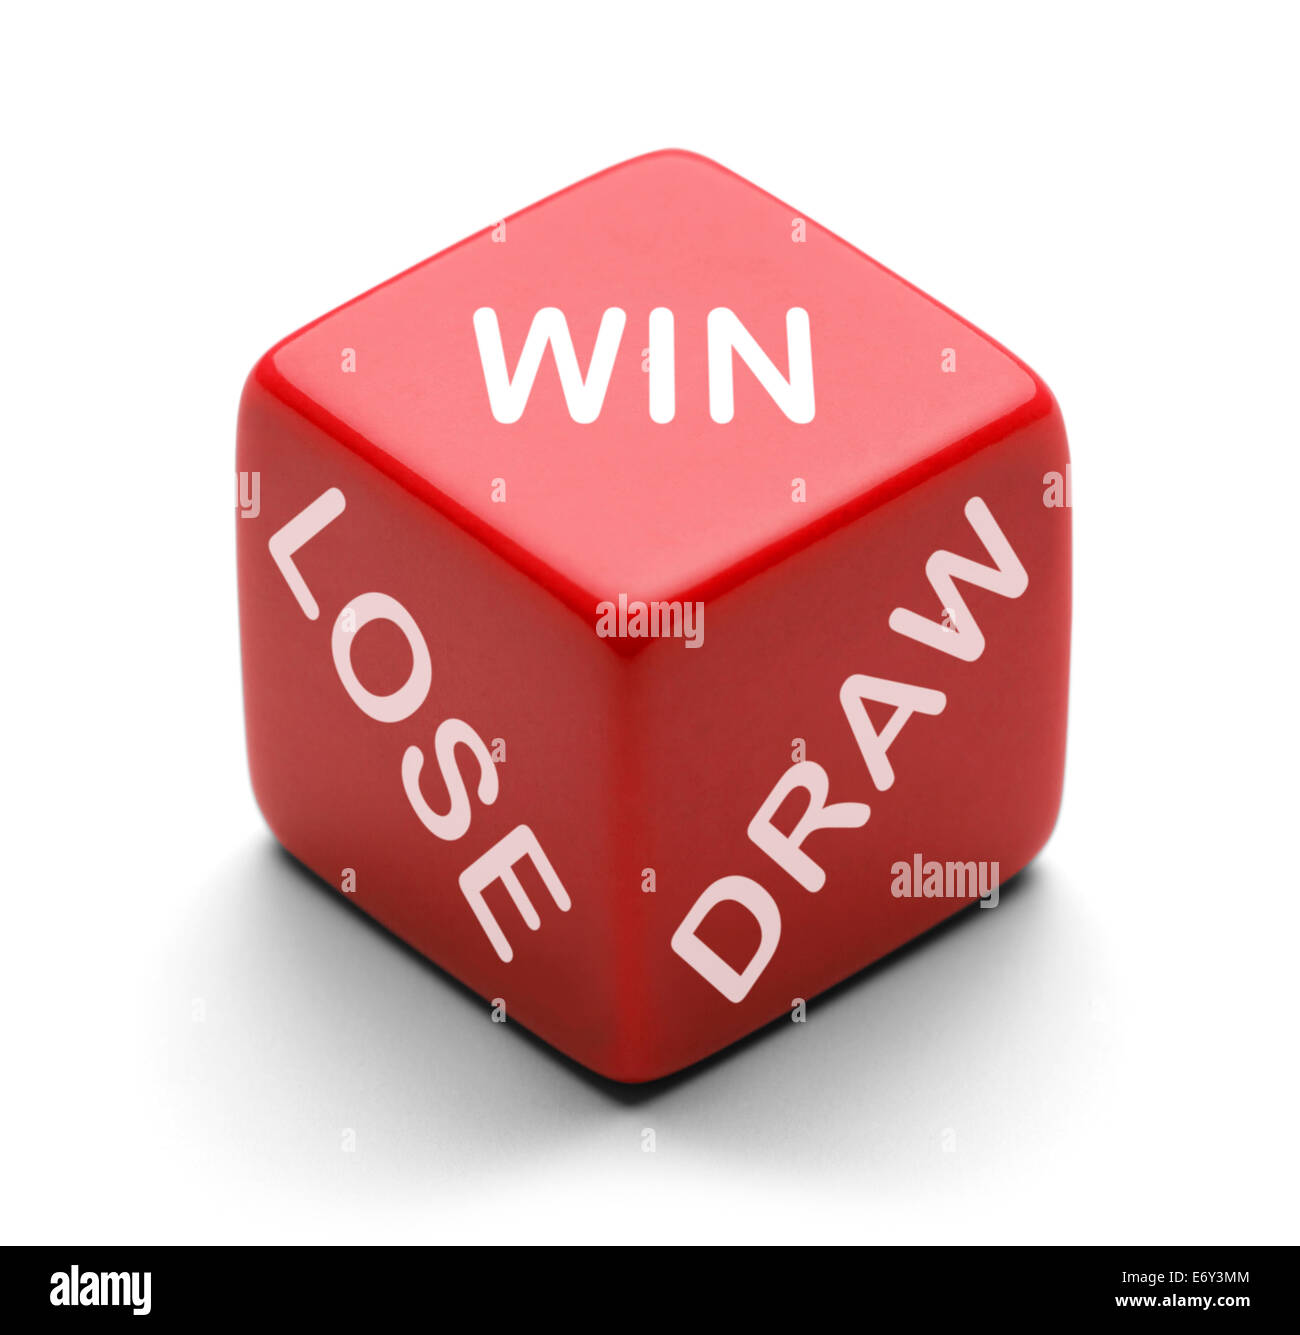 Red Dice with the words Win, Lose and Draw on it  Isolated on a White Background. - Stock Image